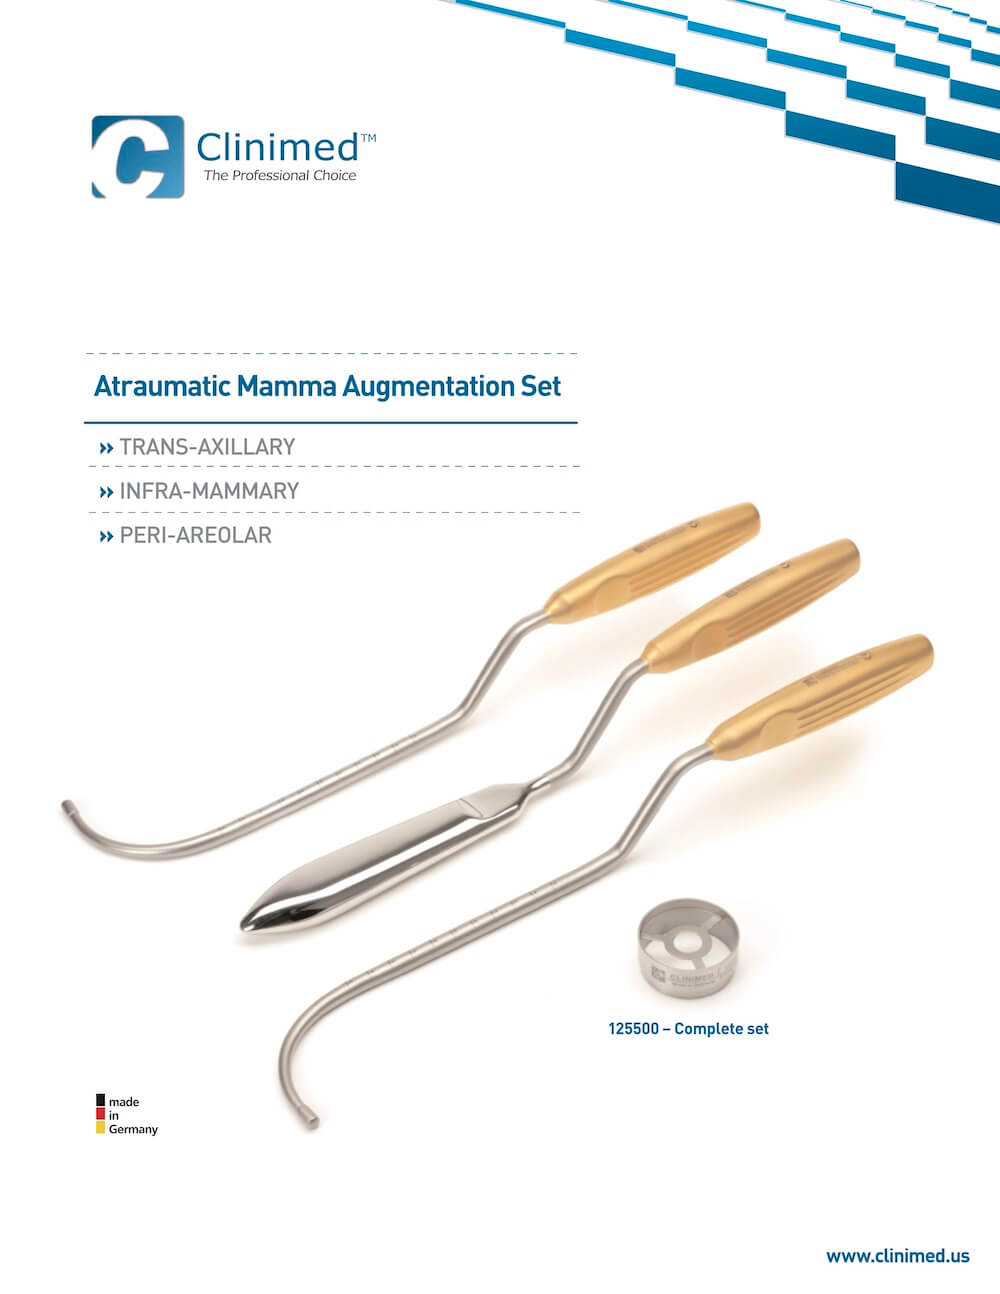 CLINIMED_Atraumatic-Mamma-Augmentation-Set